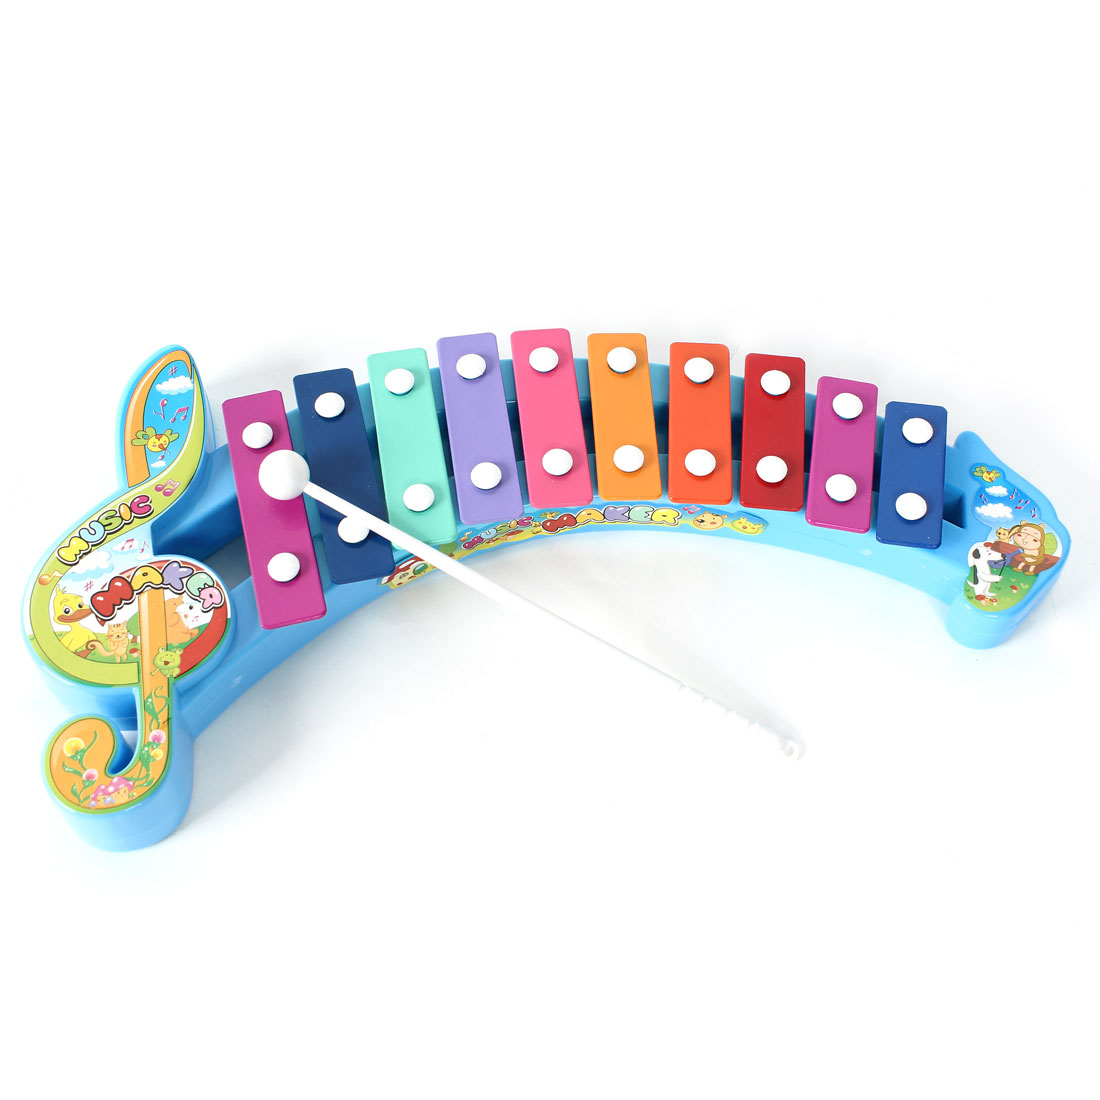 Note Shaped Baby Knocked Serinette Music Maker Musical Instrument Gift